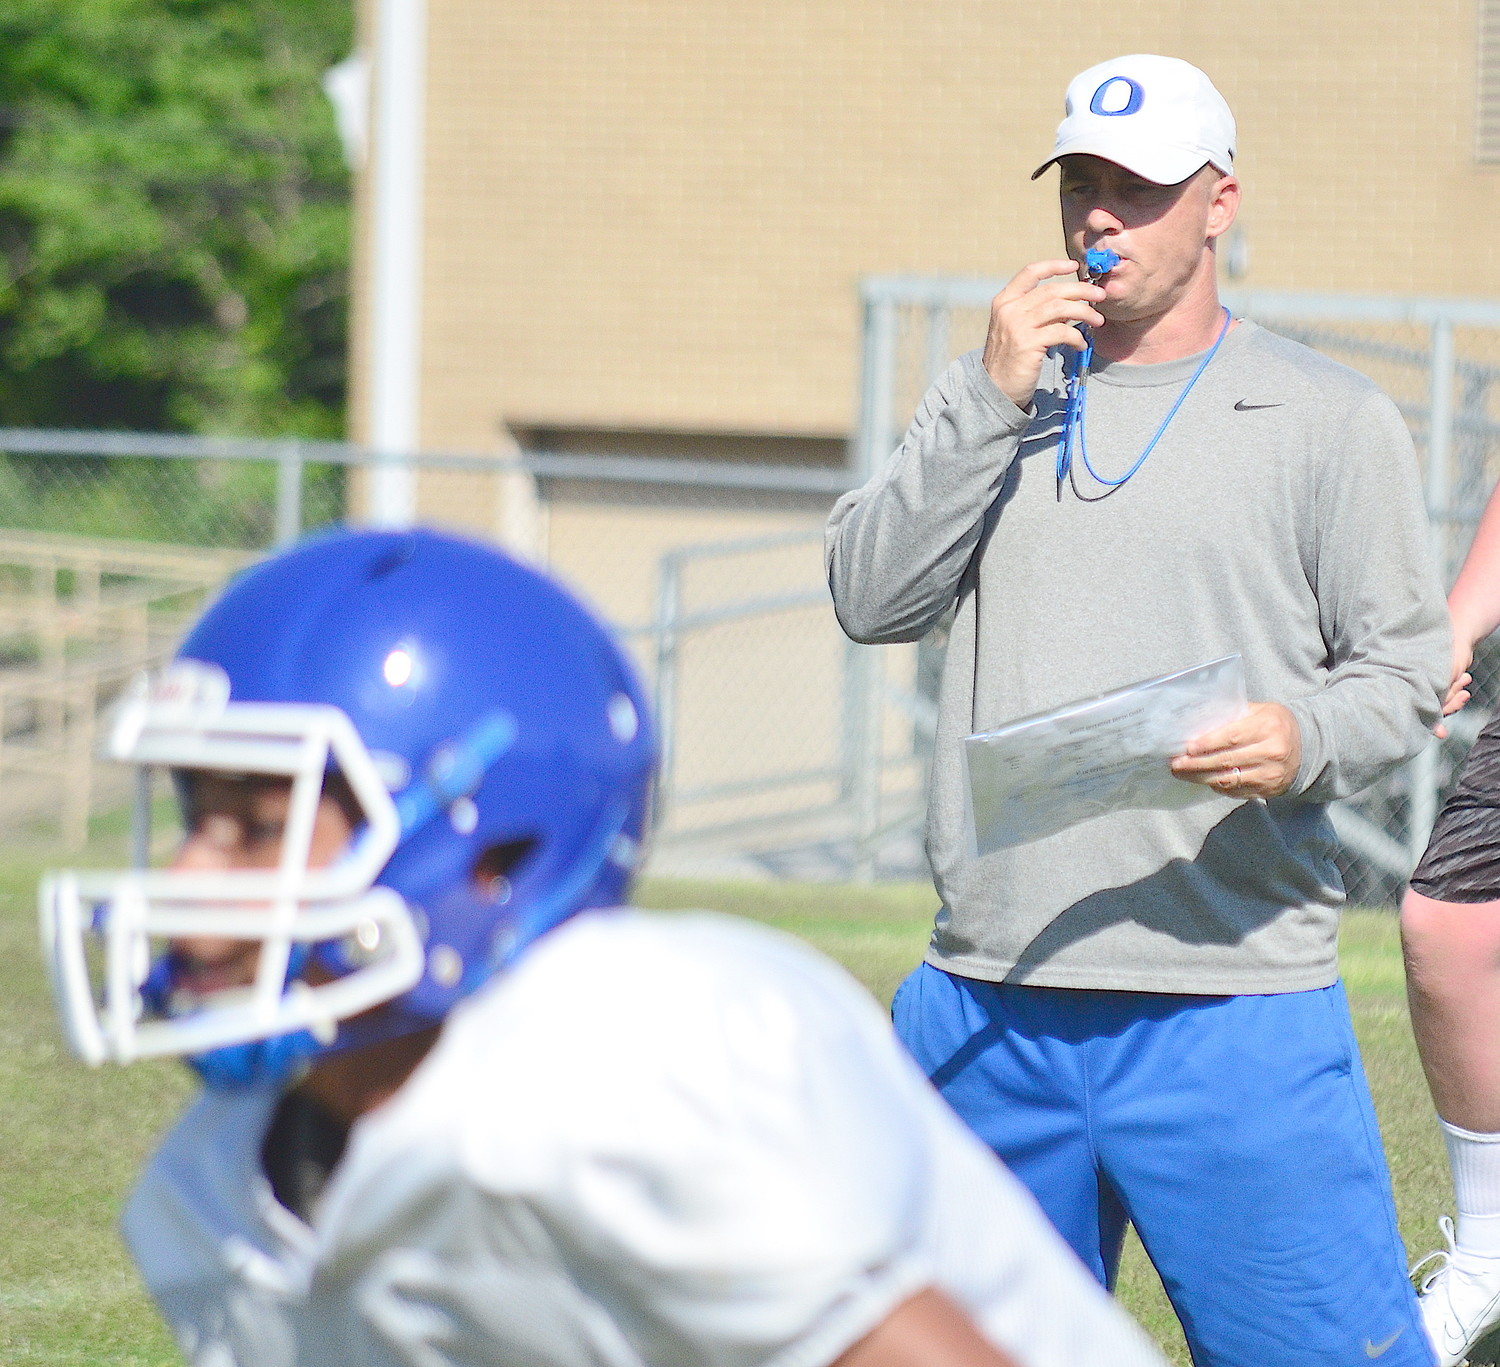 Oakman football coach Ryan Hall looks on during practice at the school earlier this week.